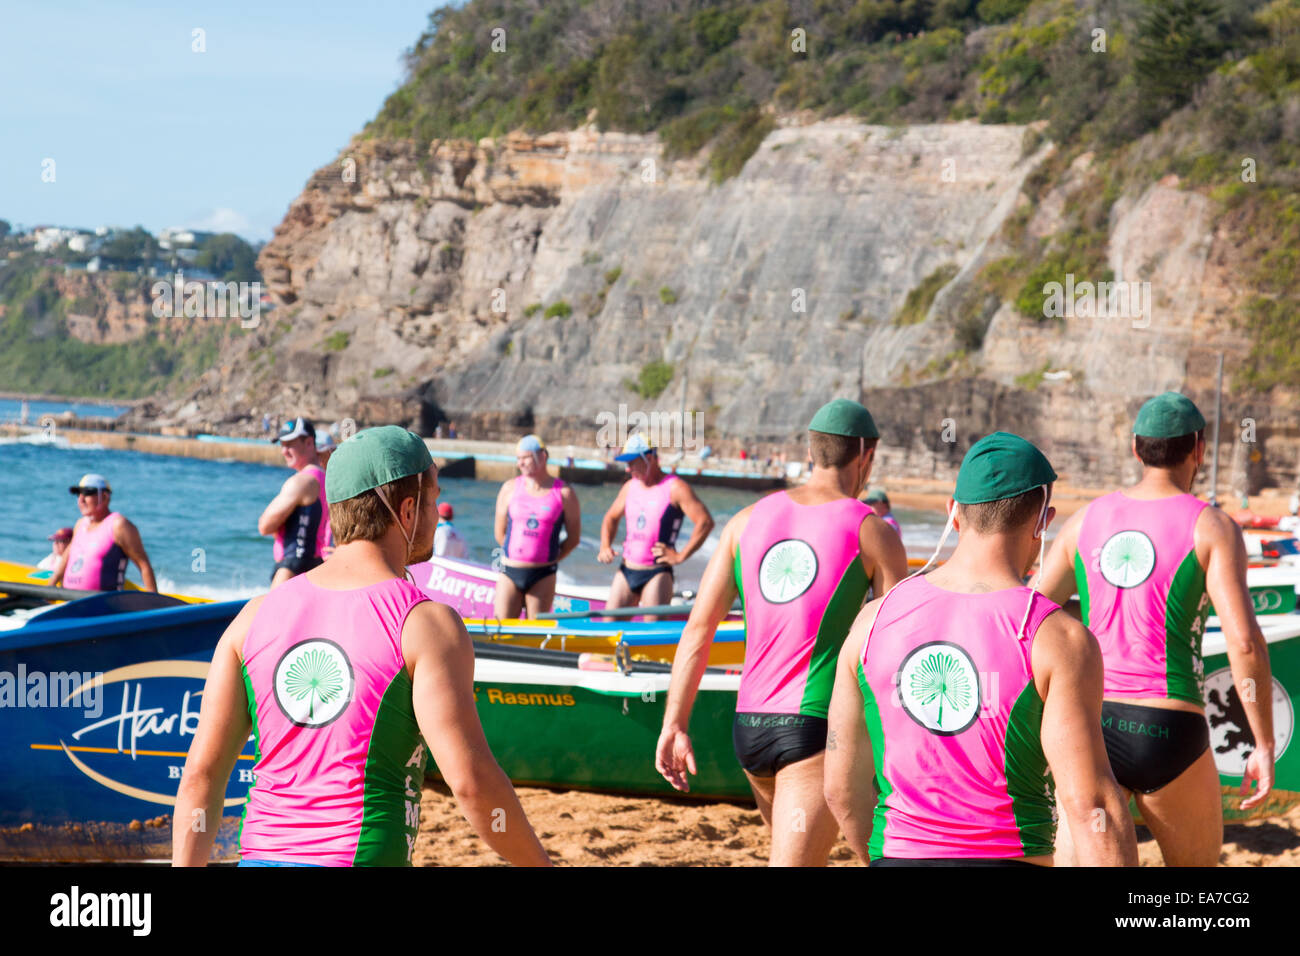 Sydney, Australie. Nov 8, 2014. La concurrence entre les courses d'été surfboat surfclubs situé Photo Stock